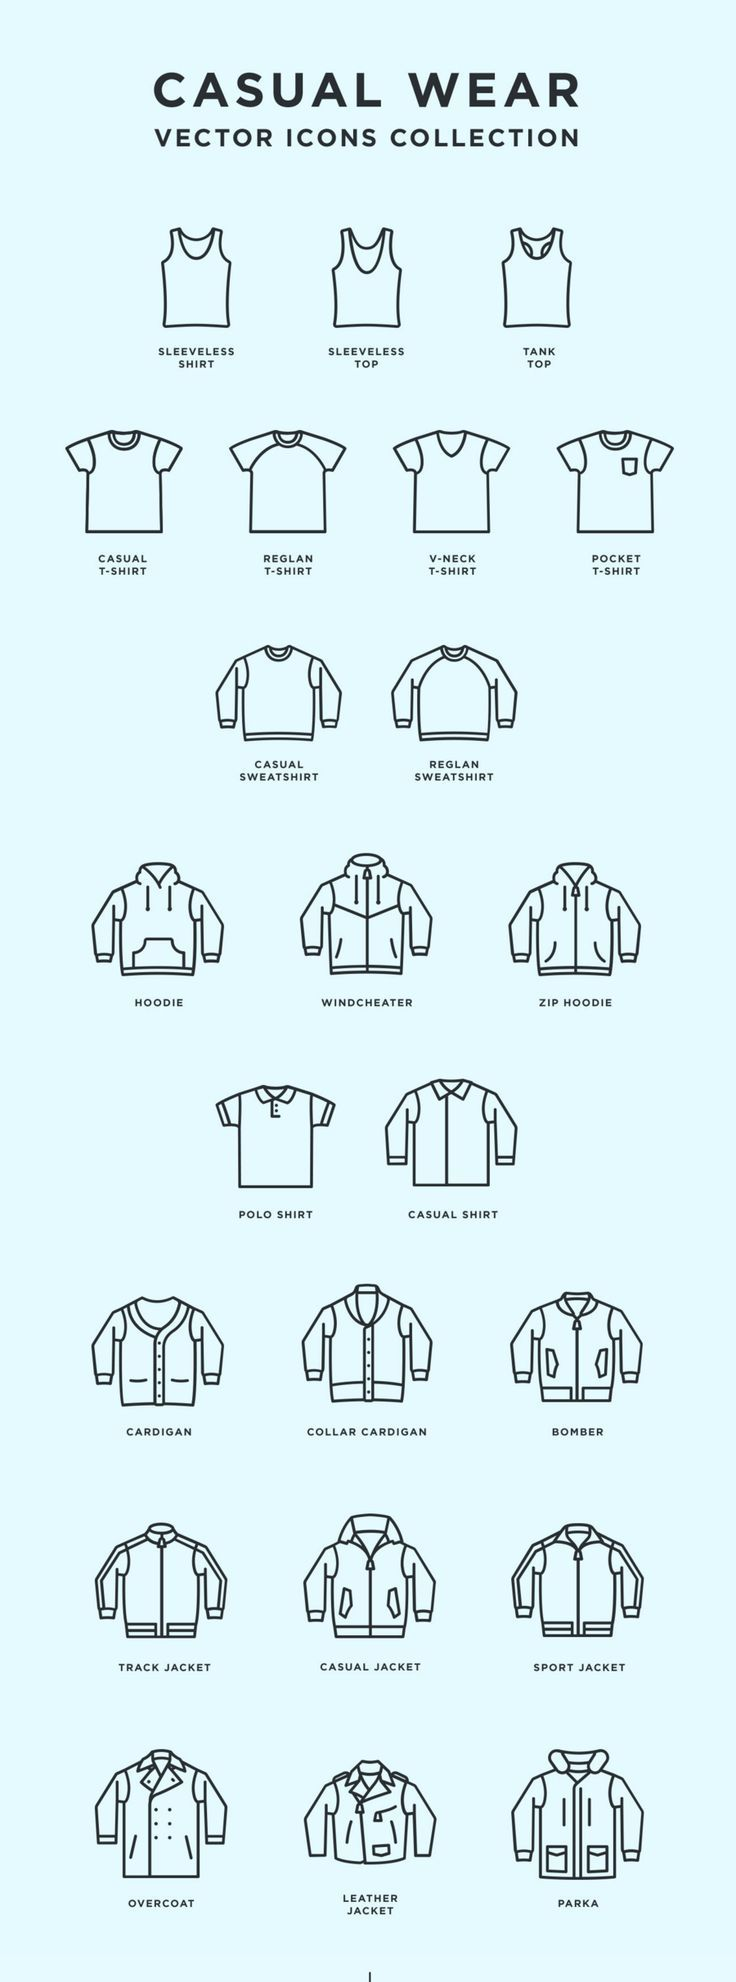 Free Casual Wear Icons | Outfit icons